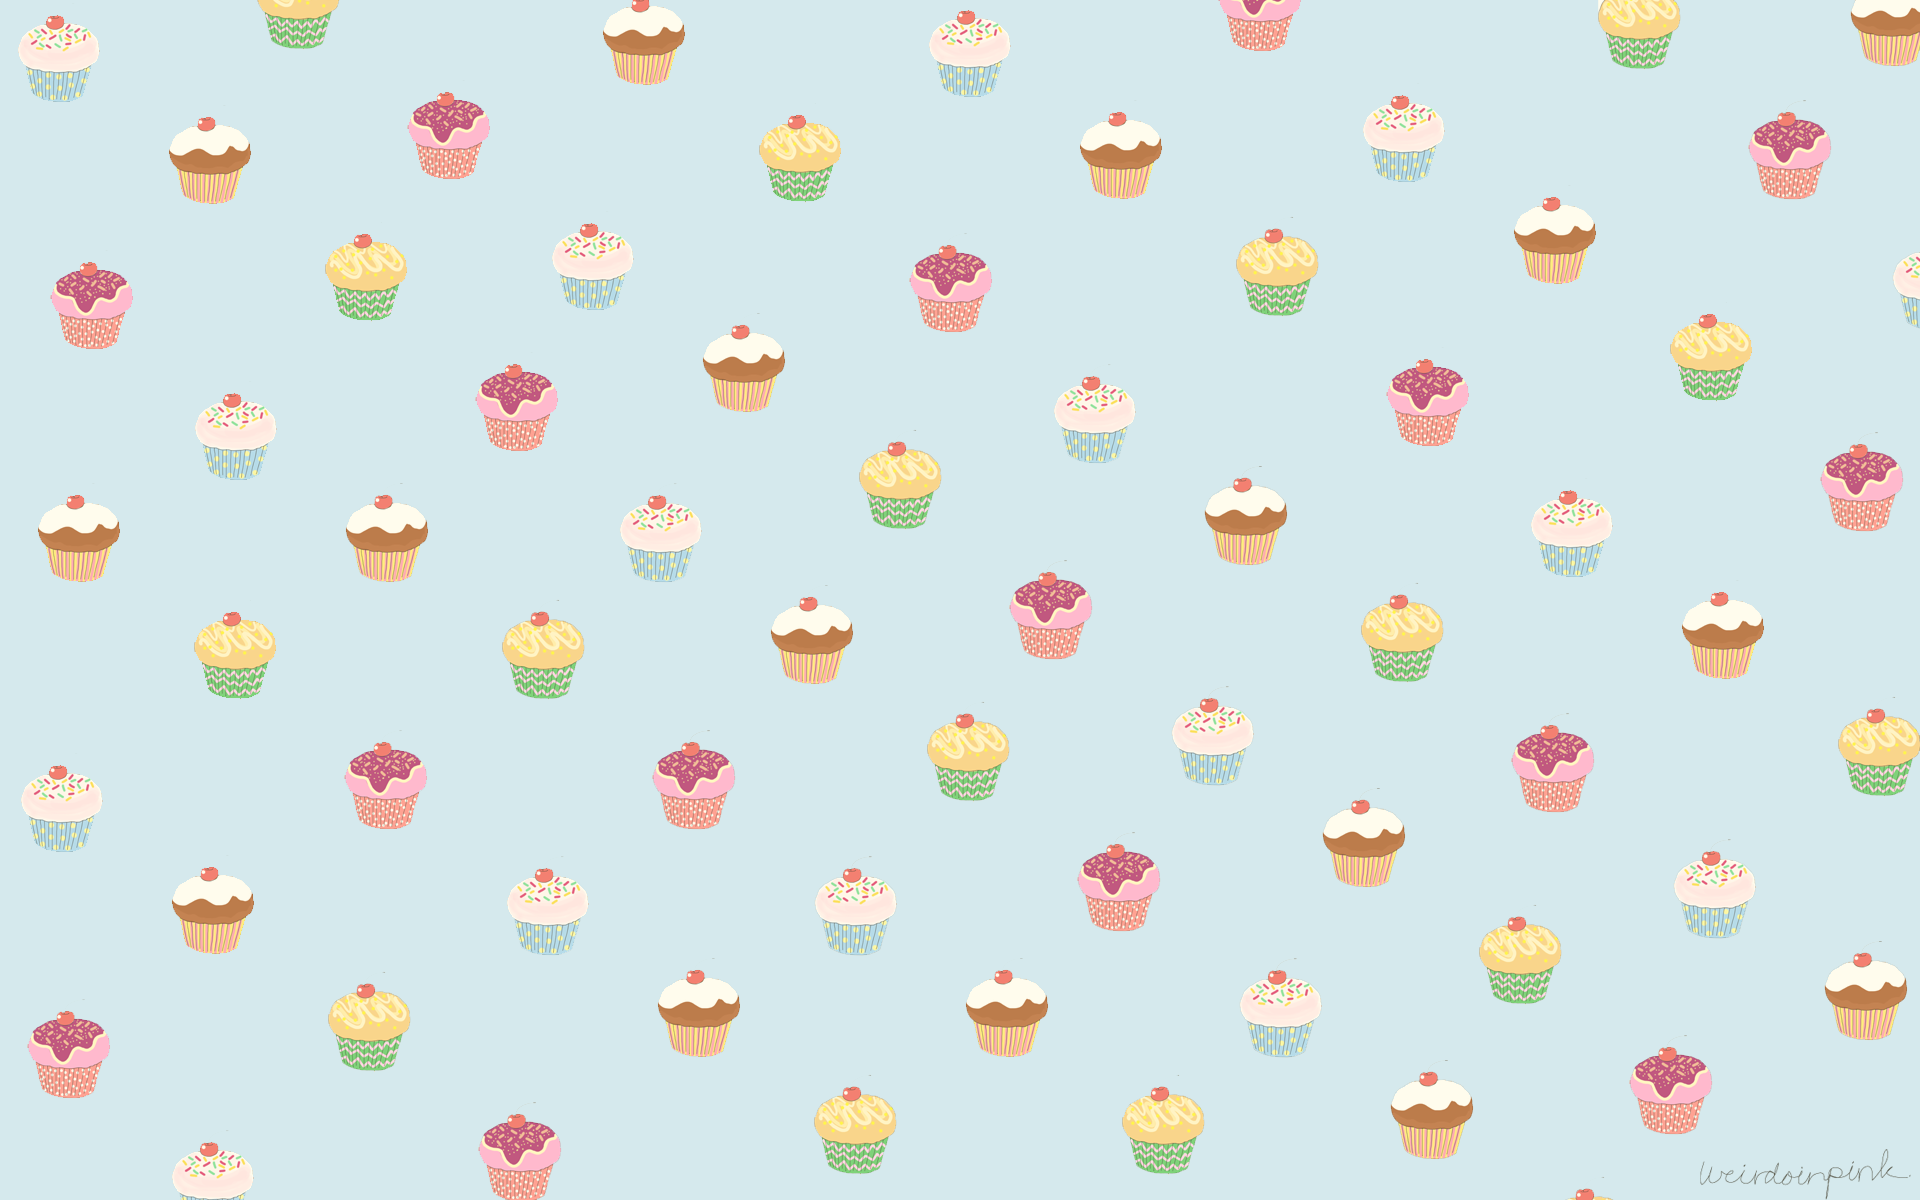 Pink Cupcake Wallpaper 31838 HD Desktop Backgrounds and Widescreen 1920x1200